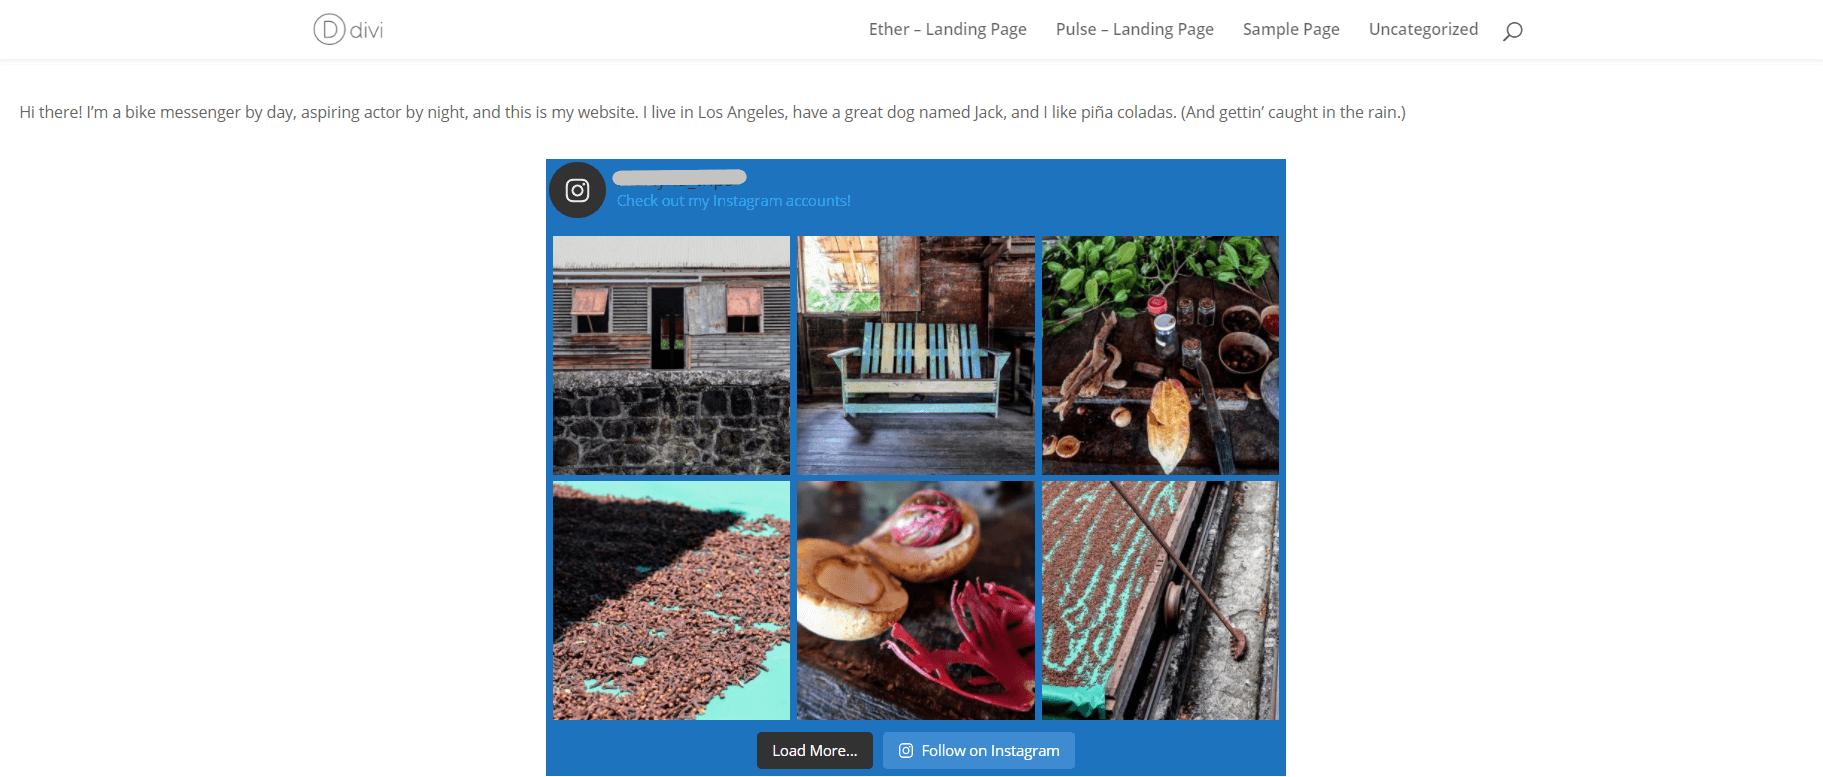 how-to-show-images-from-multiple-instagram-accounts-in-the-same-feed-on-wordpress-11 How to Show Images From Multiple Instagram Accounts in the Same Feed on WordPress